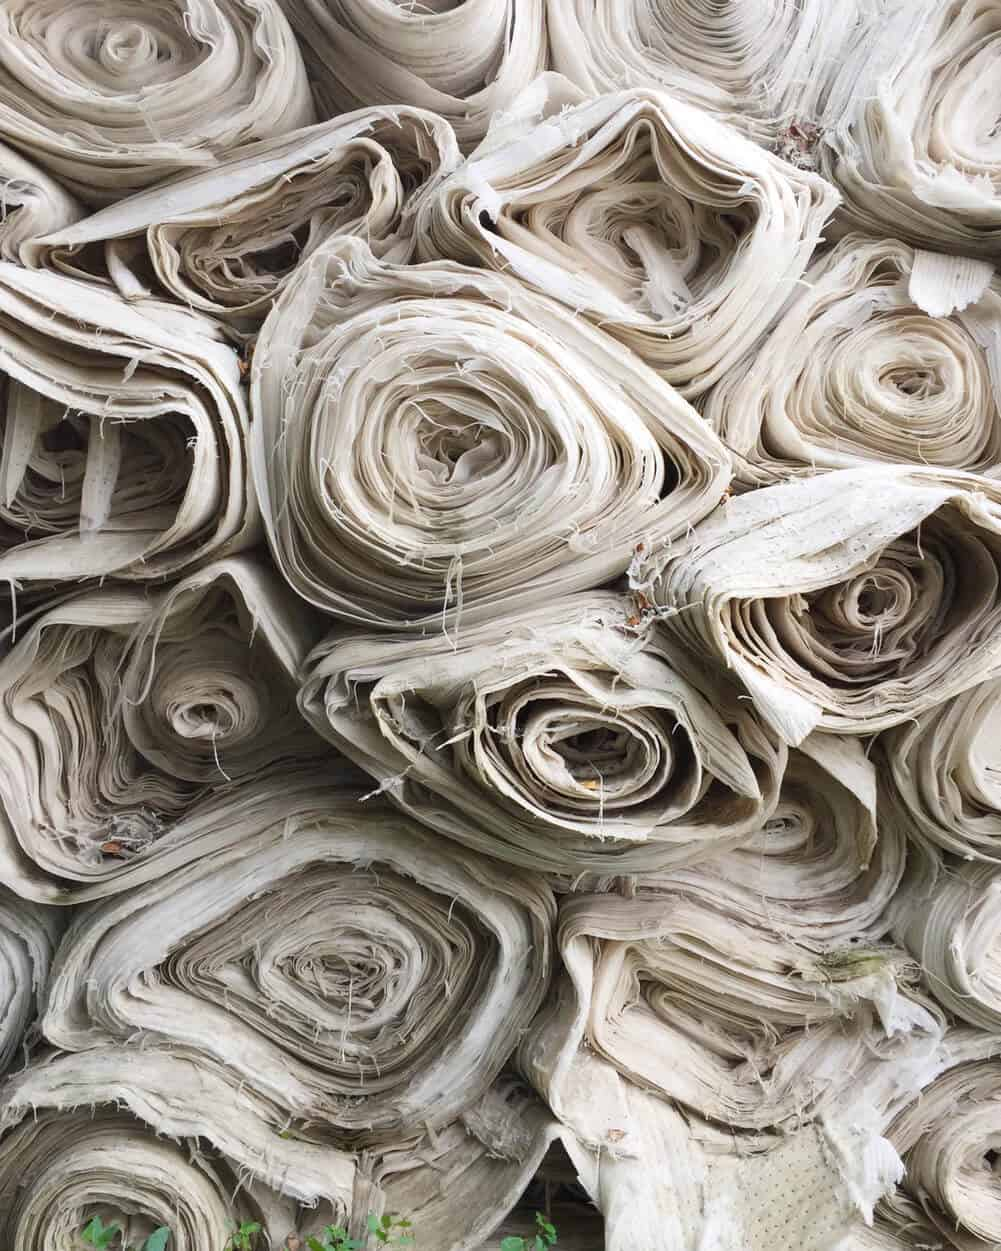 Large rolls of white textile fabric for manufacturing